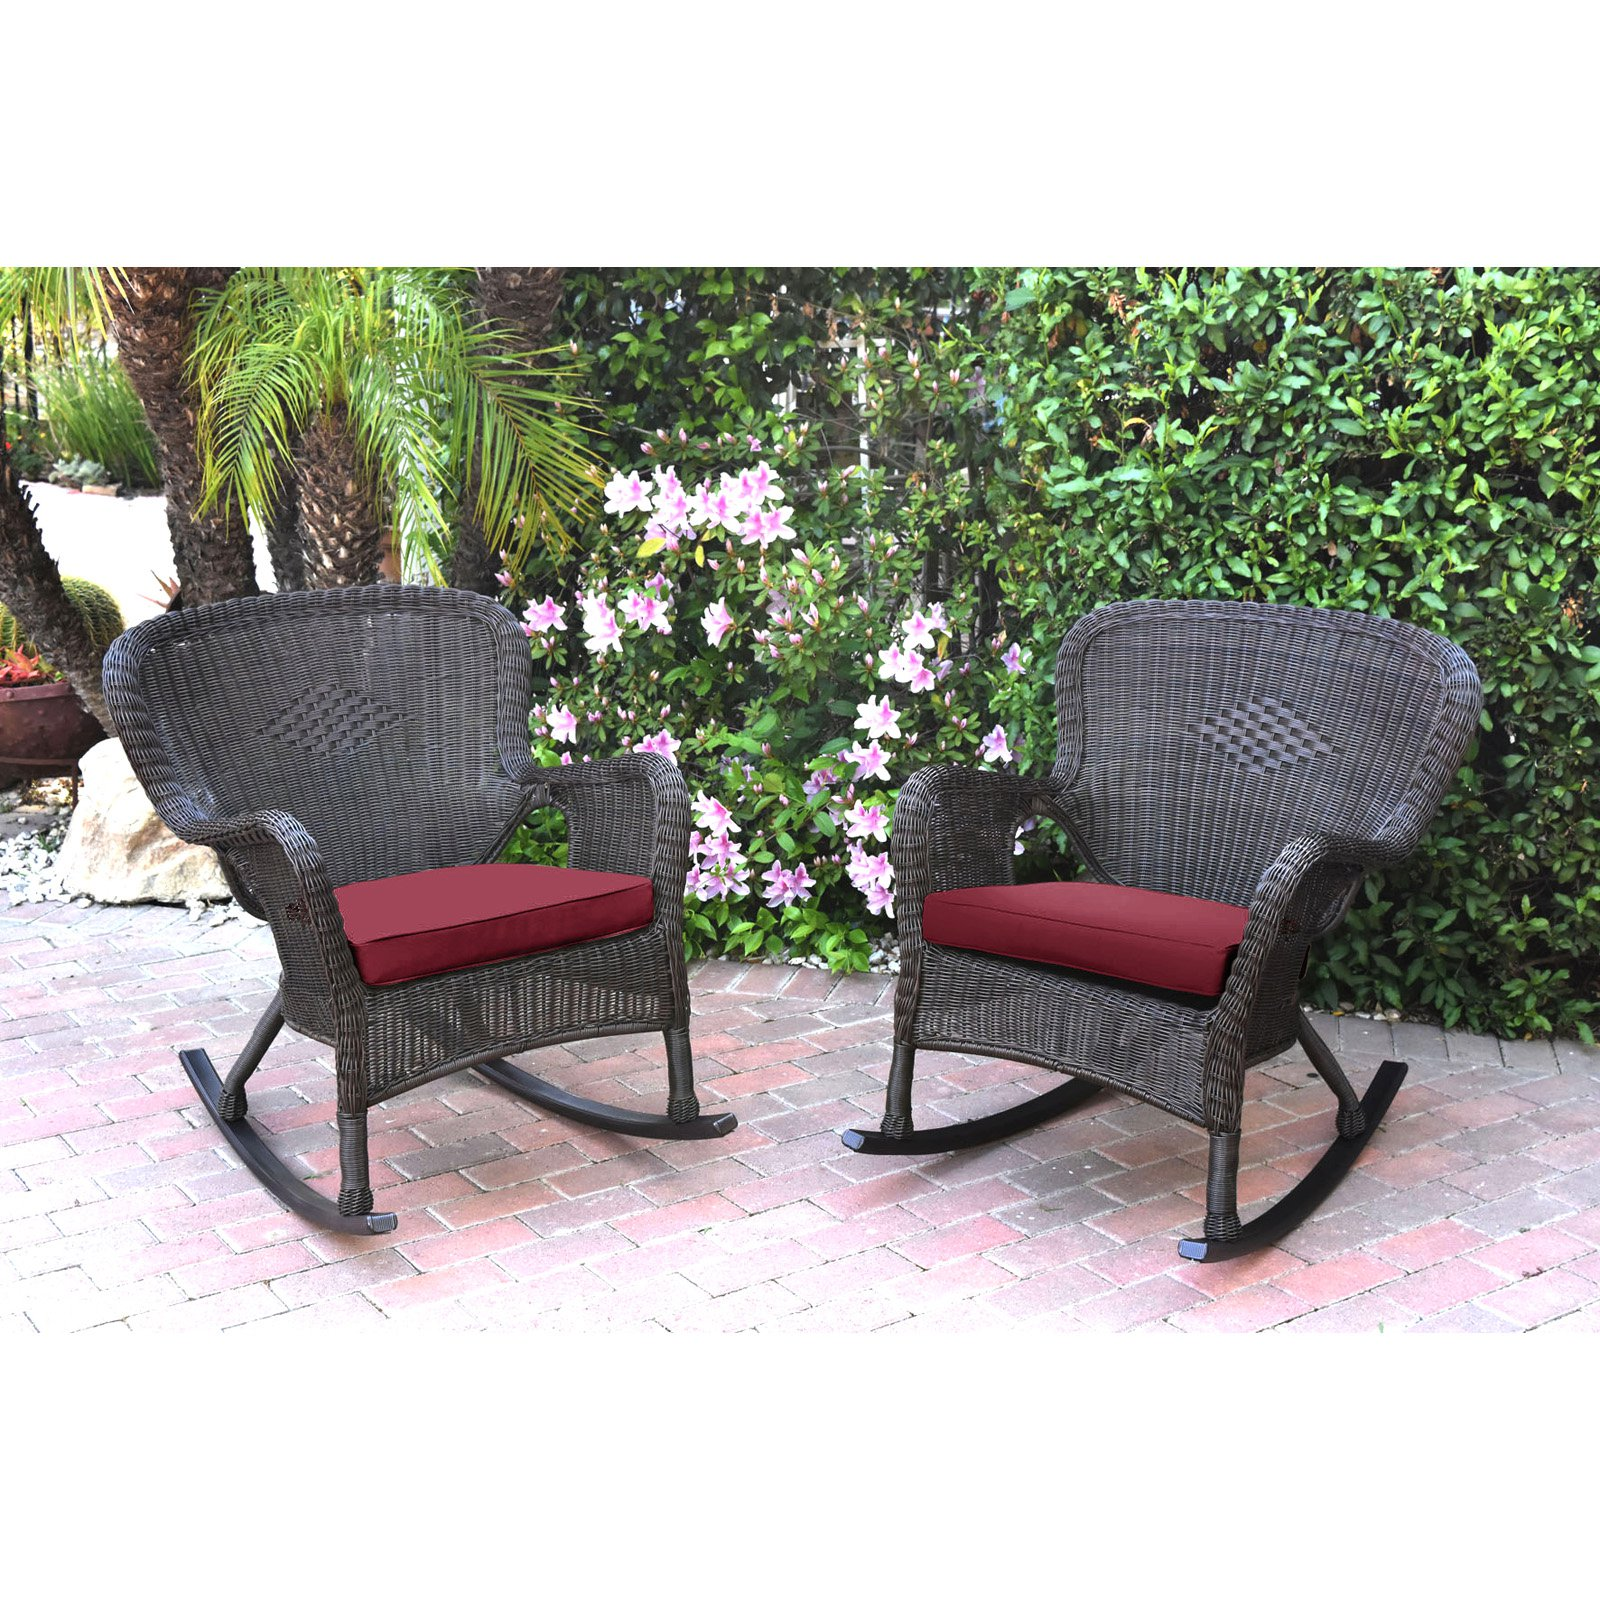 Outdoor Rocking Chair Set Jeco Windsor Resin Wicker Outdoor Rocking Chair Set Of 2